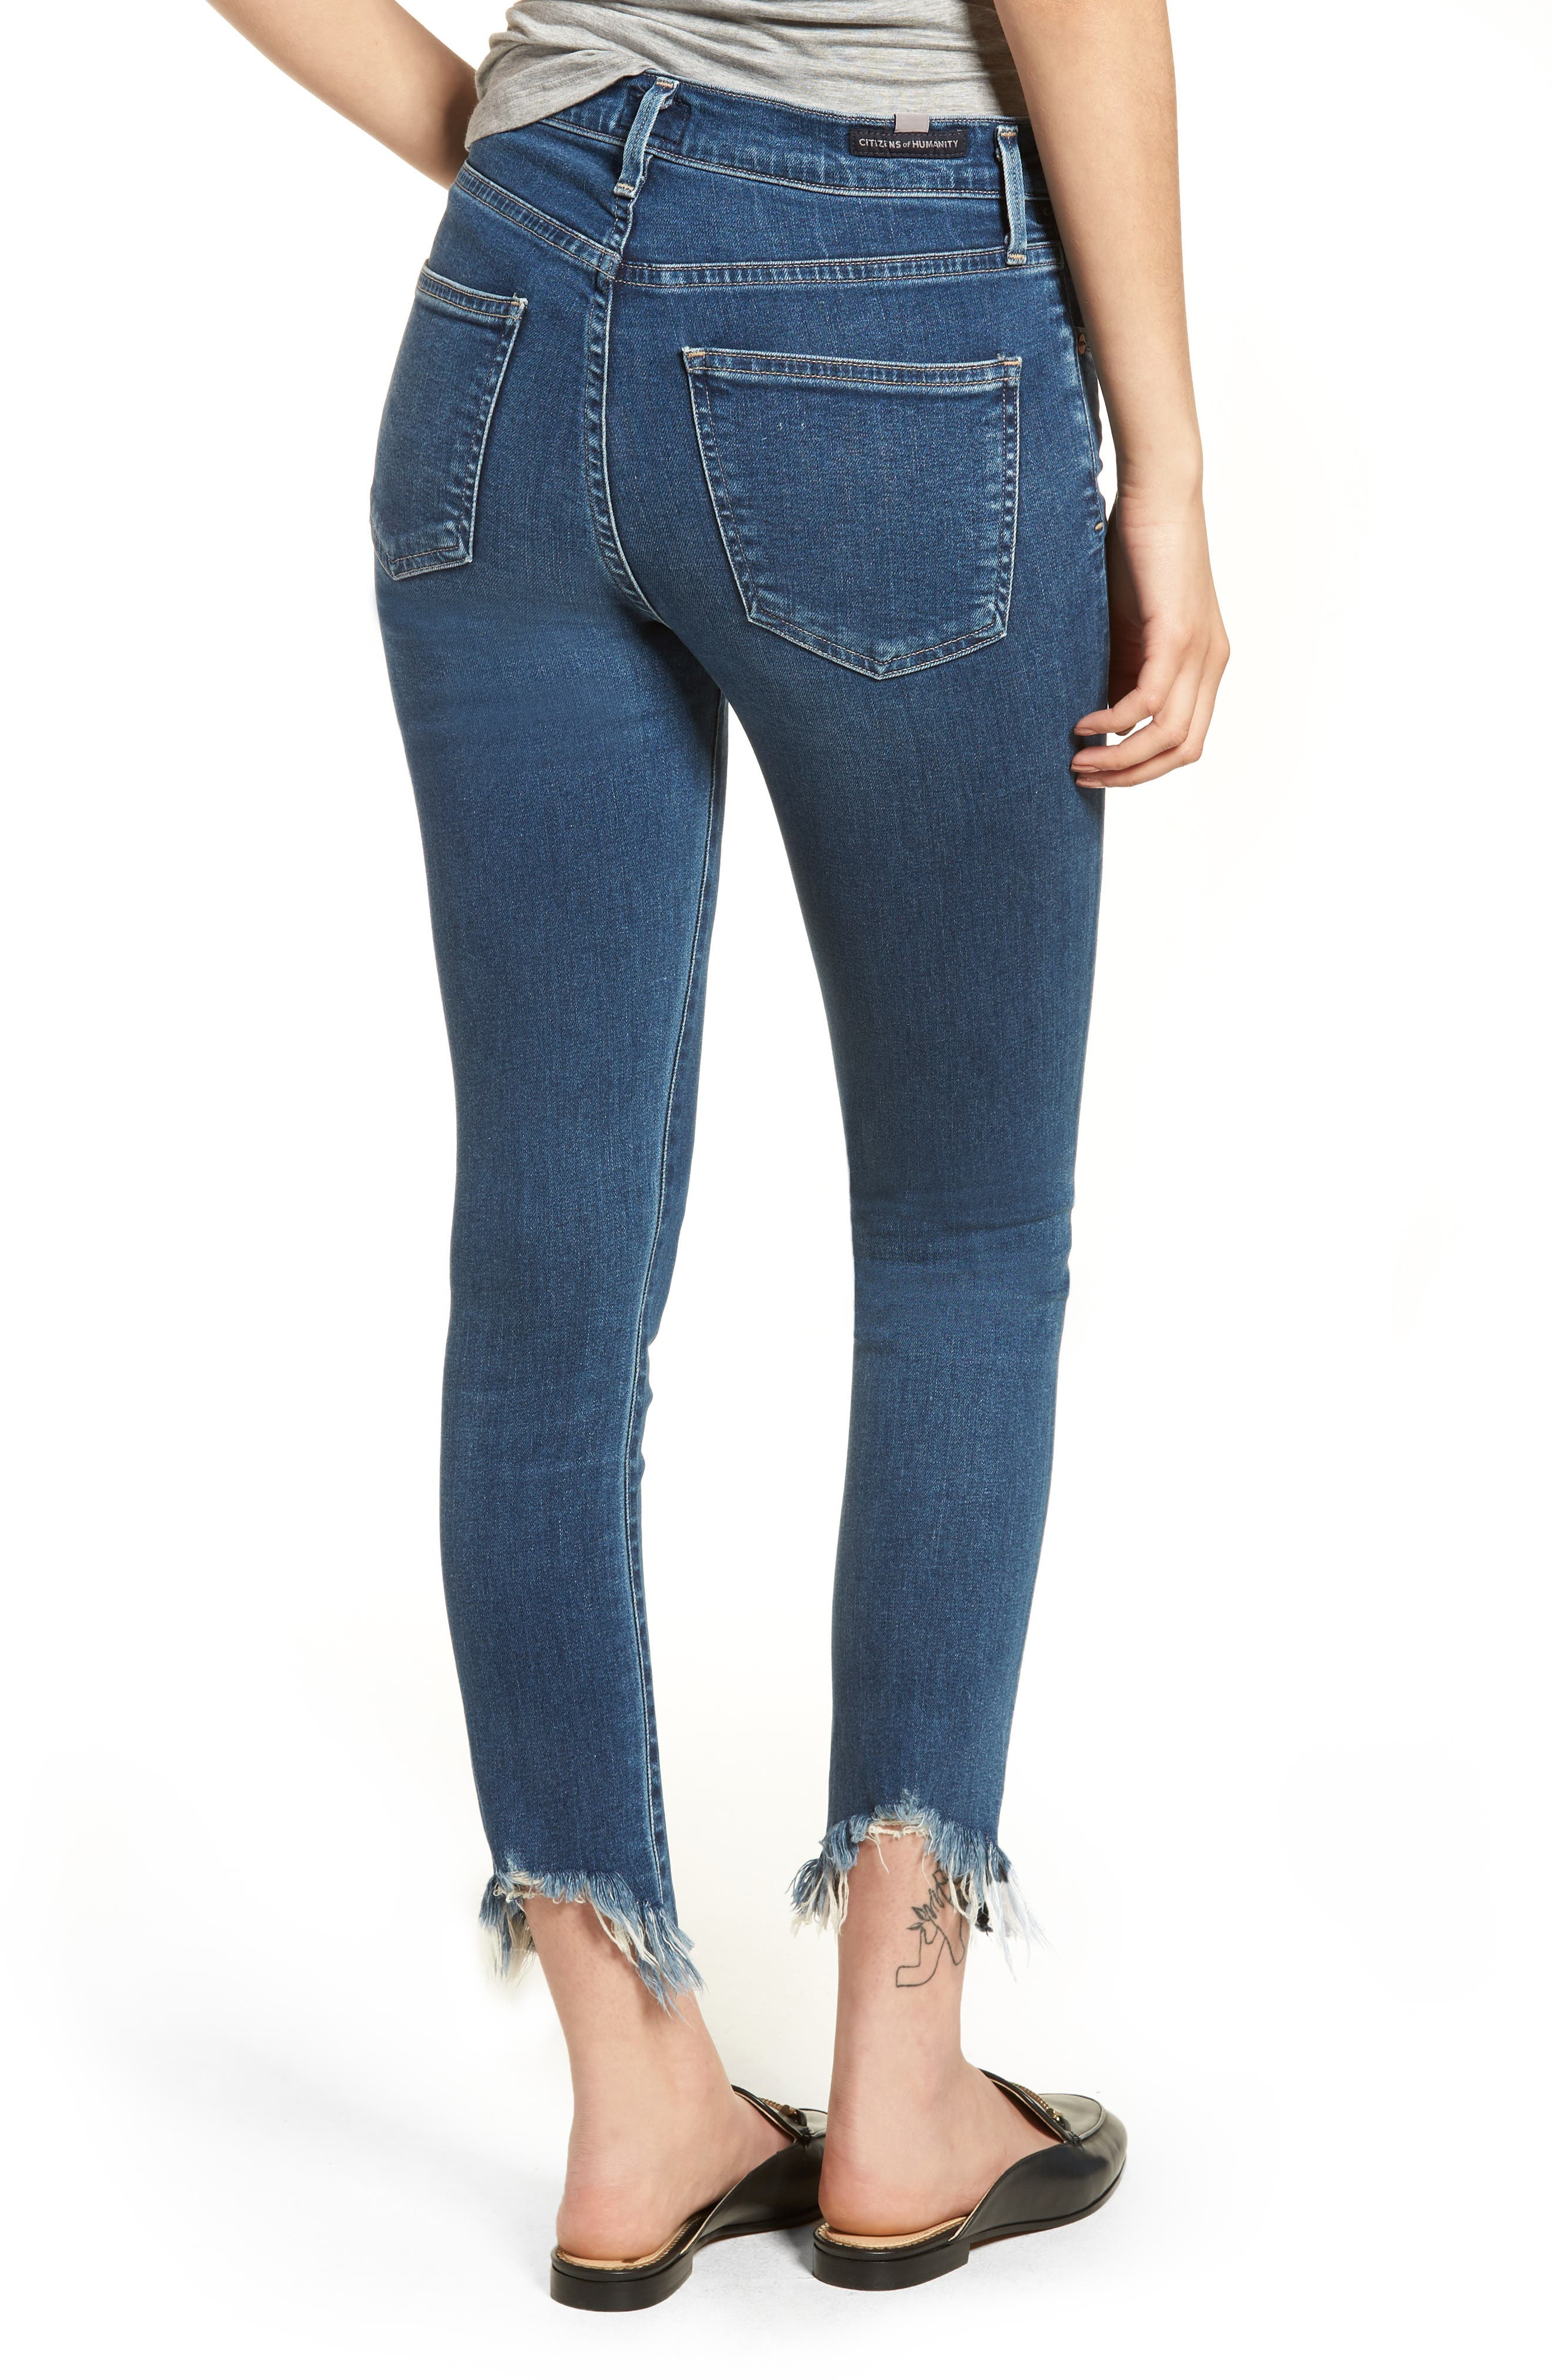 Rocket High Waist Crop Skinny Jeans,                             Alternate thumbnail 2, color,                             FREQUENCY